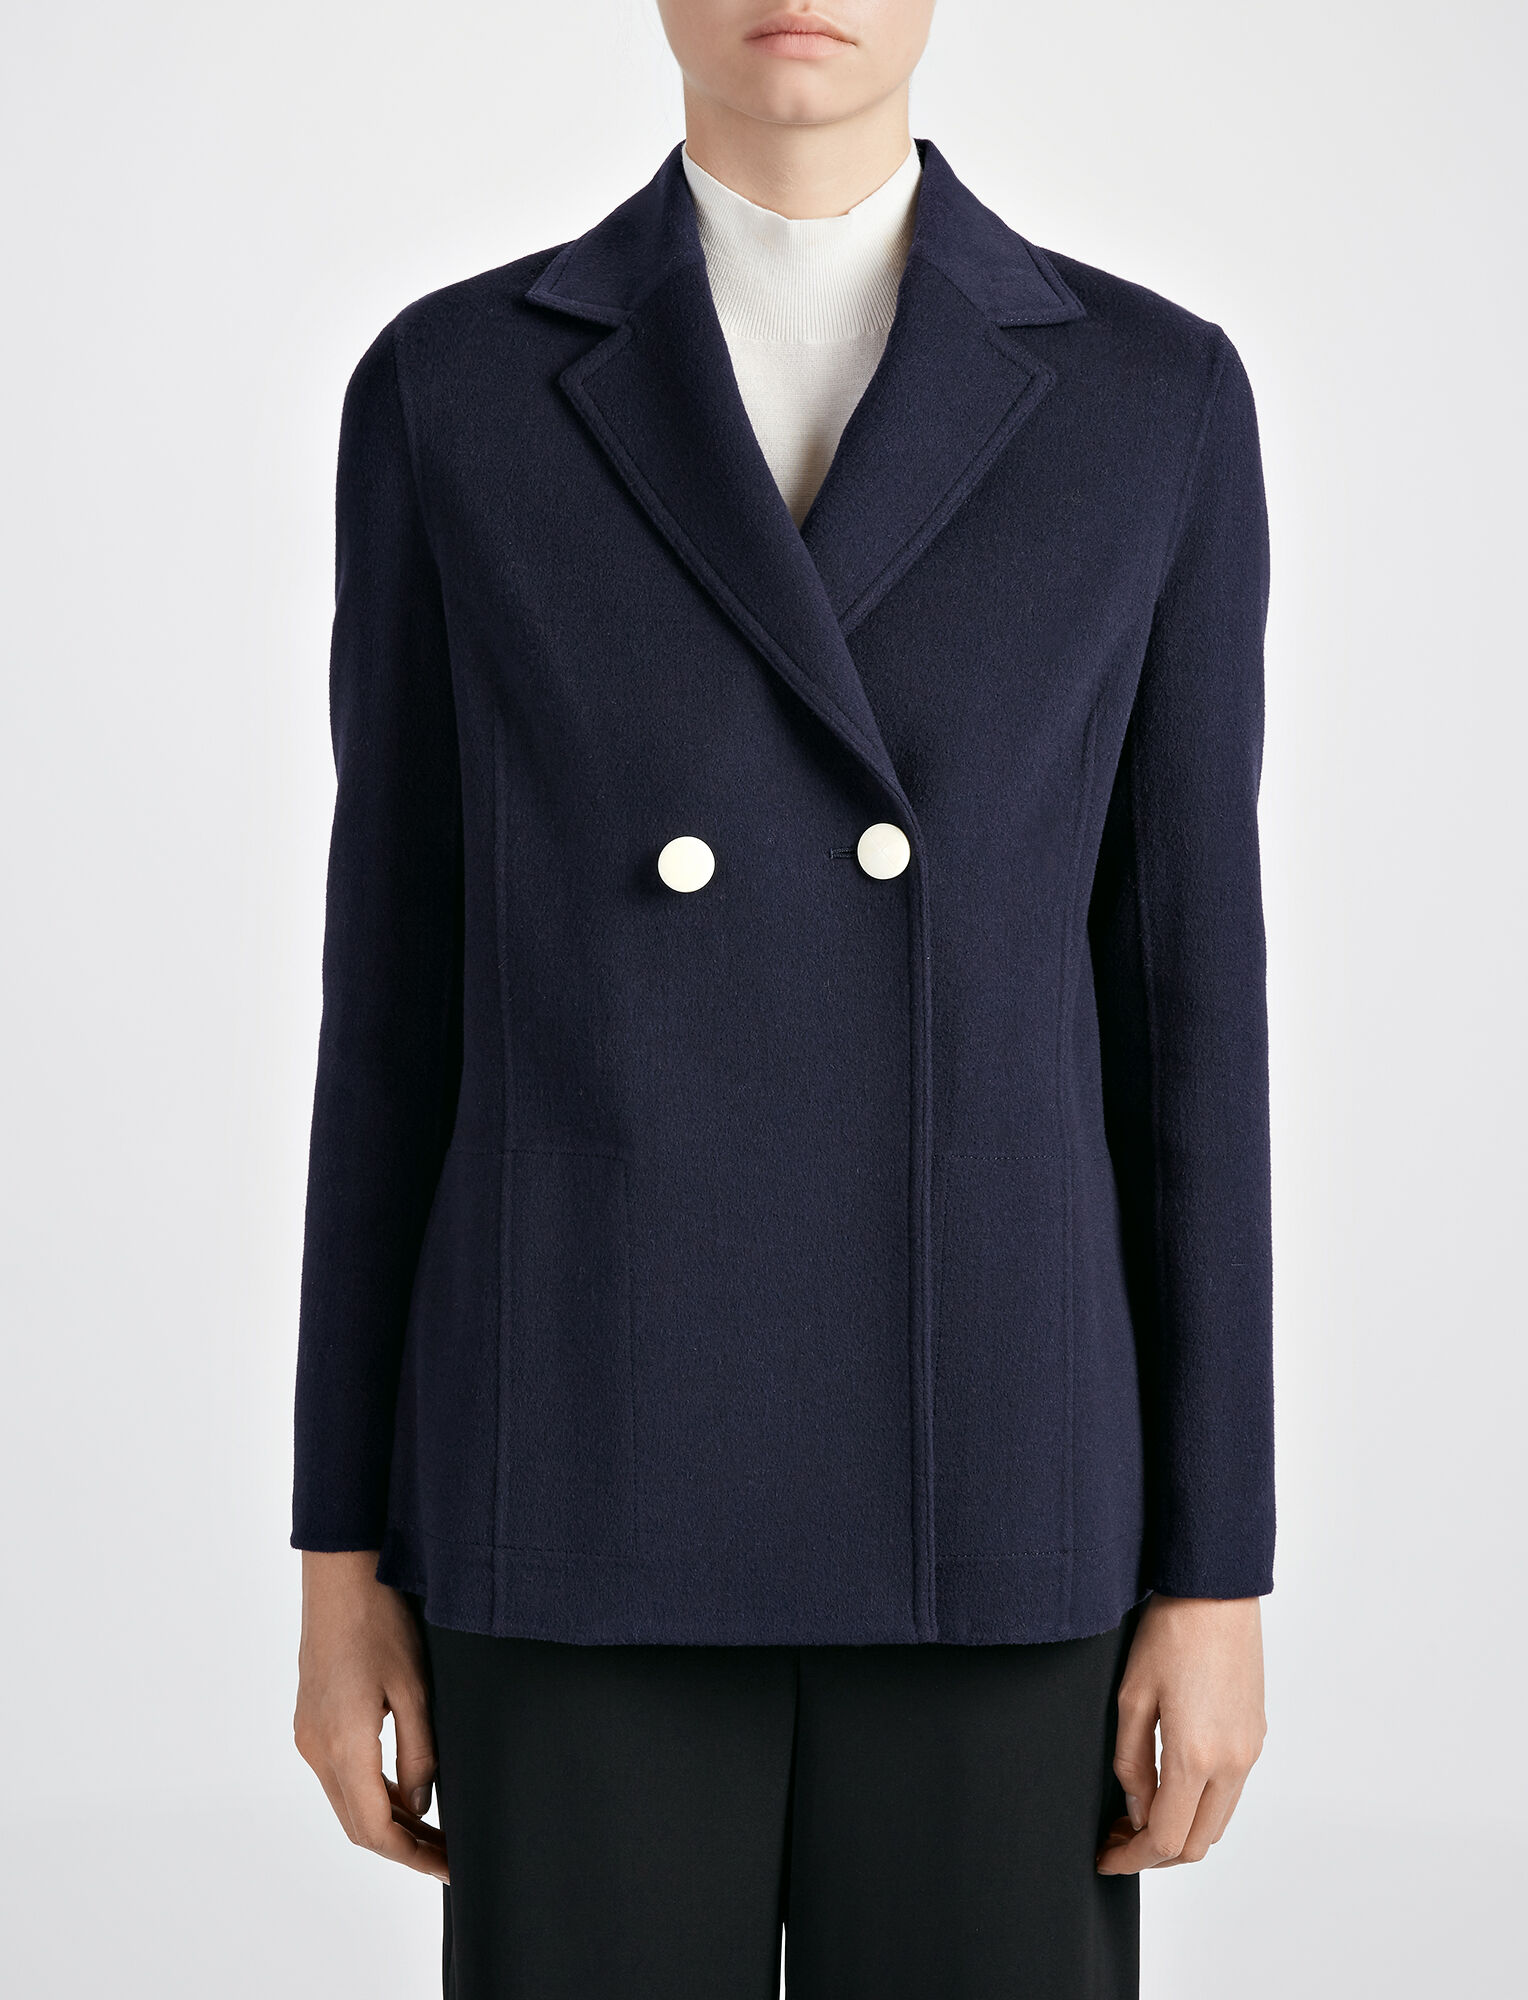 Joseph, Light Double Cashmere Brest Jacket, in MARINE